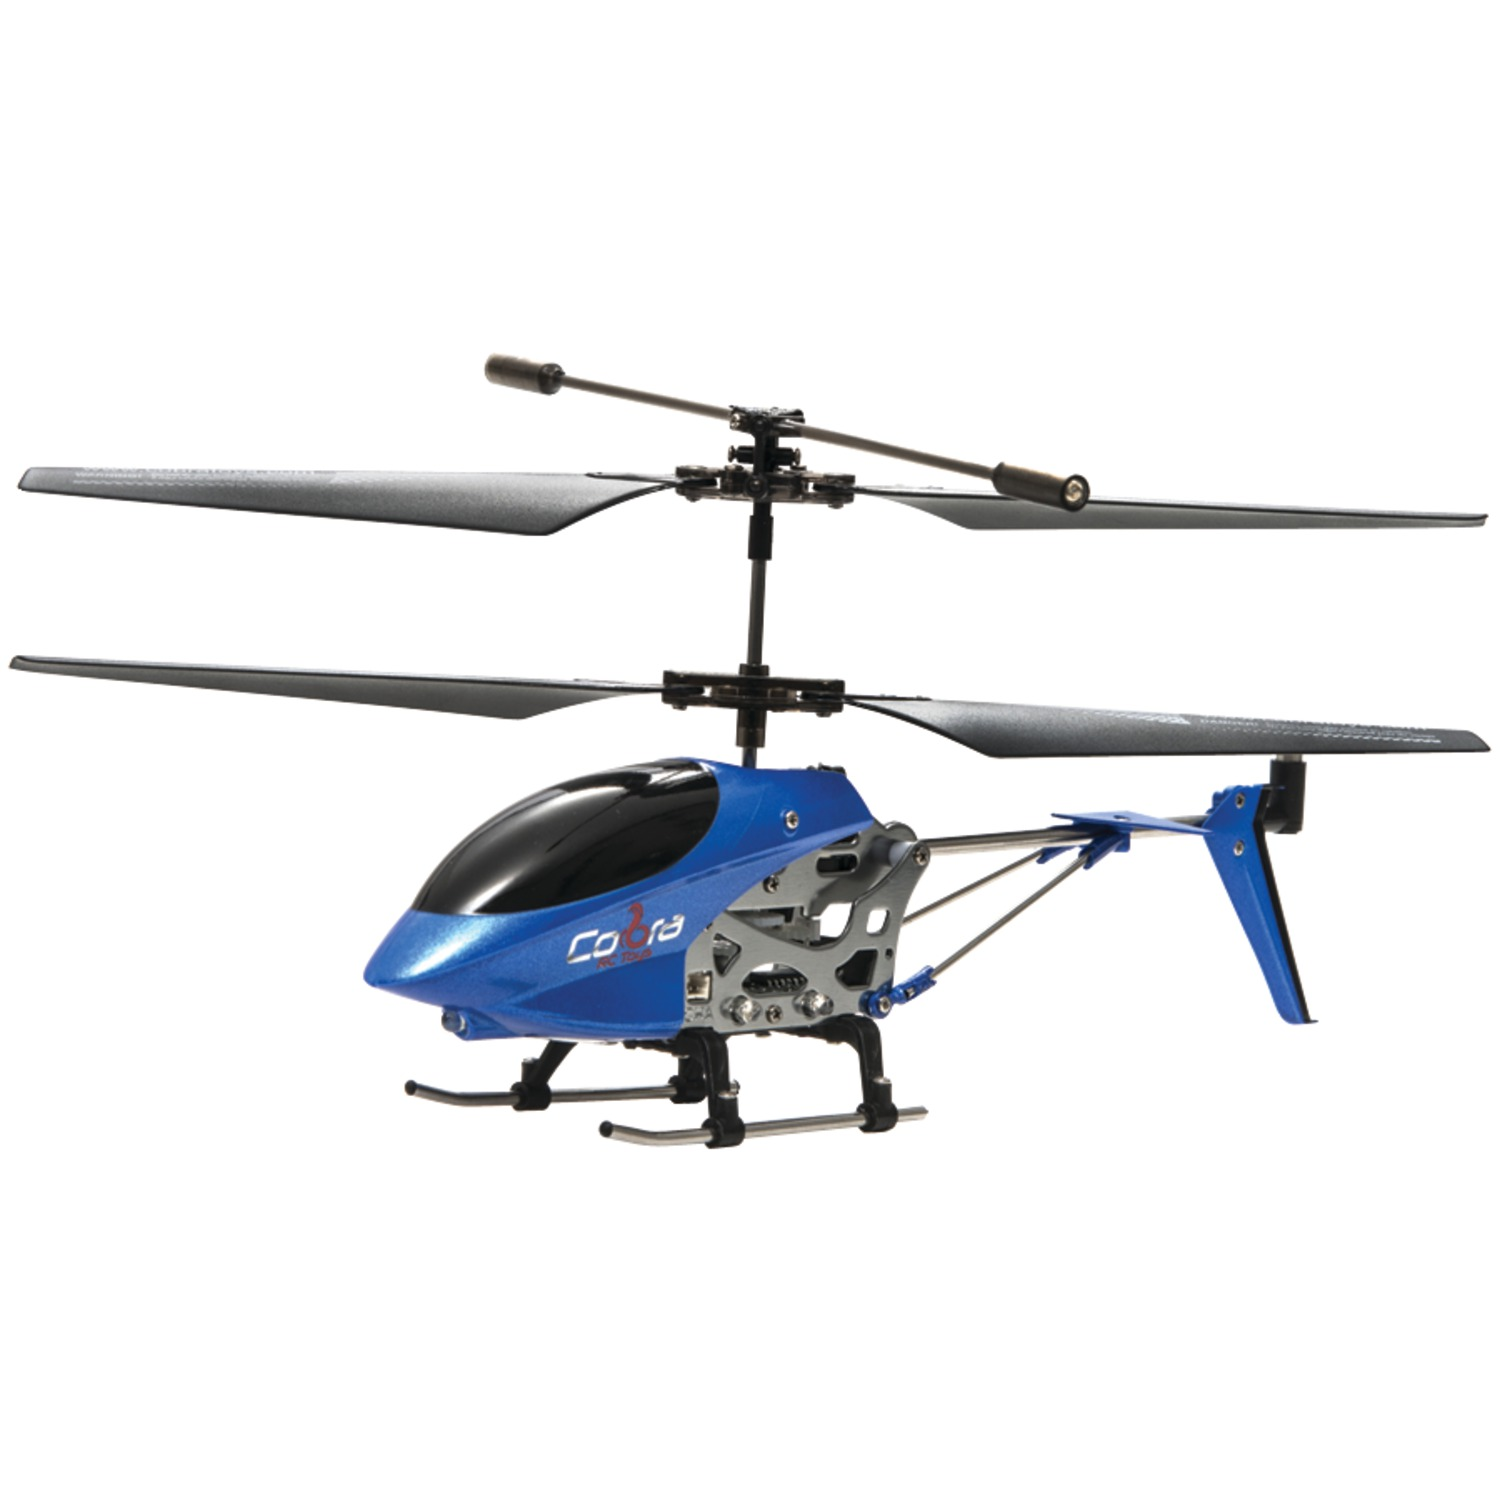 best mini remote control helicopter with Remote Control Mini Helicopter With Gyro Special Edition 908722 Pid51323 on  additionally Research also Mini Jet Airplanes moreover Wholesale toys moreover Search.